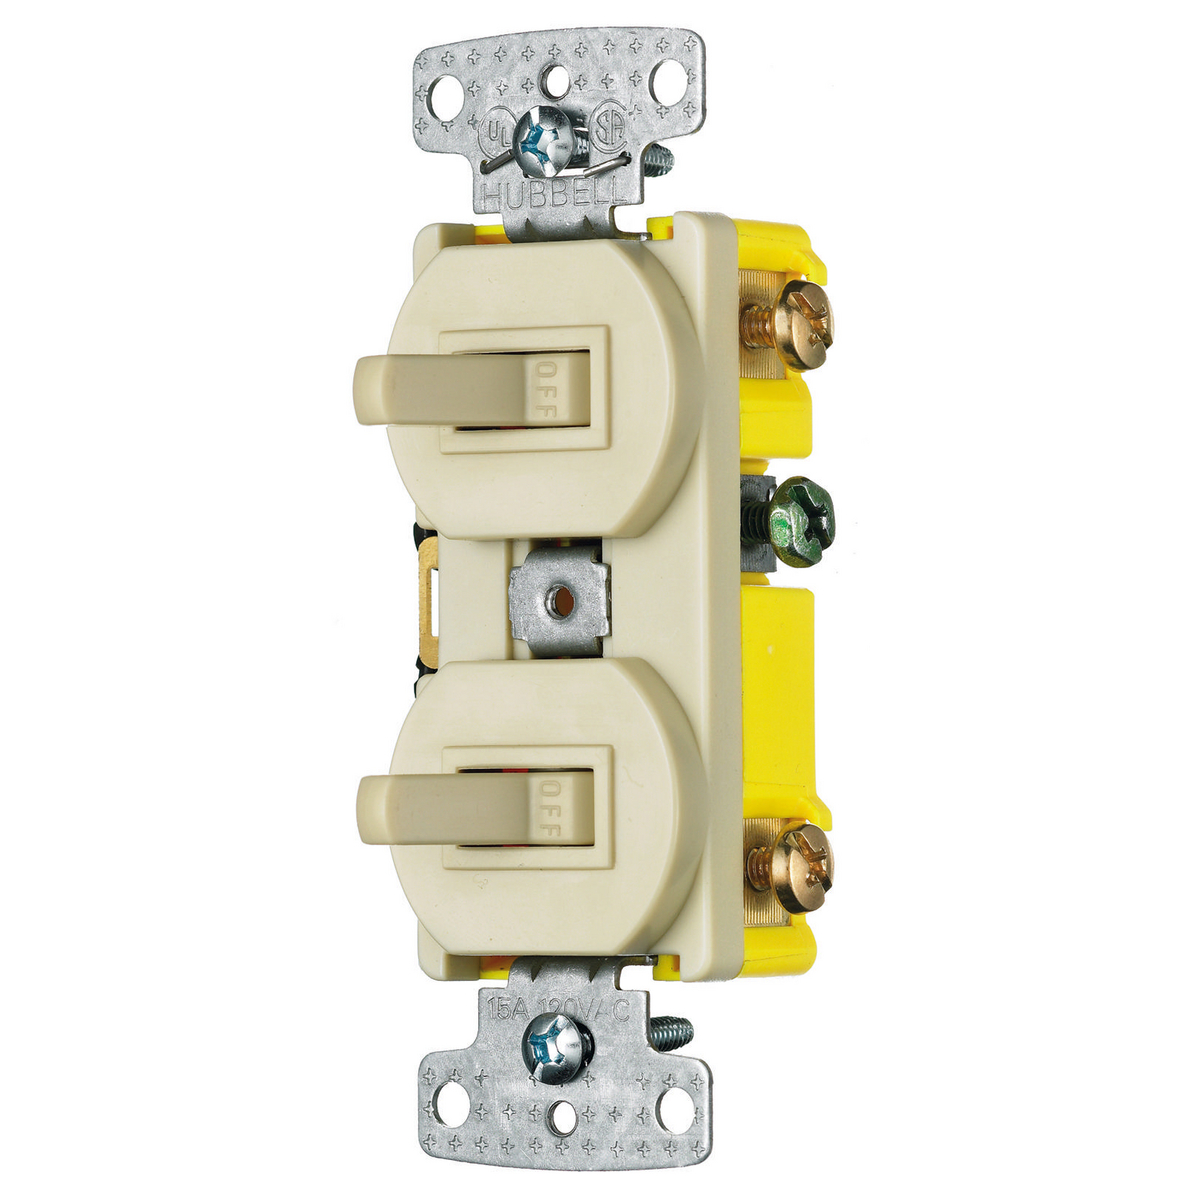 Hubbell RC103I 15 Amp 120 VAC 1-Pole 3-Way Ivory Combination Switch